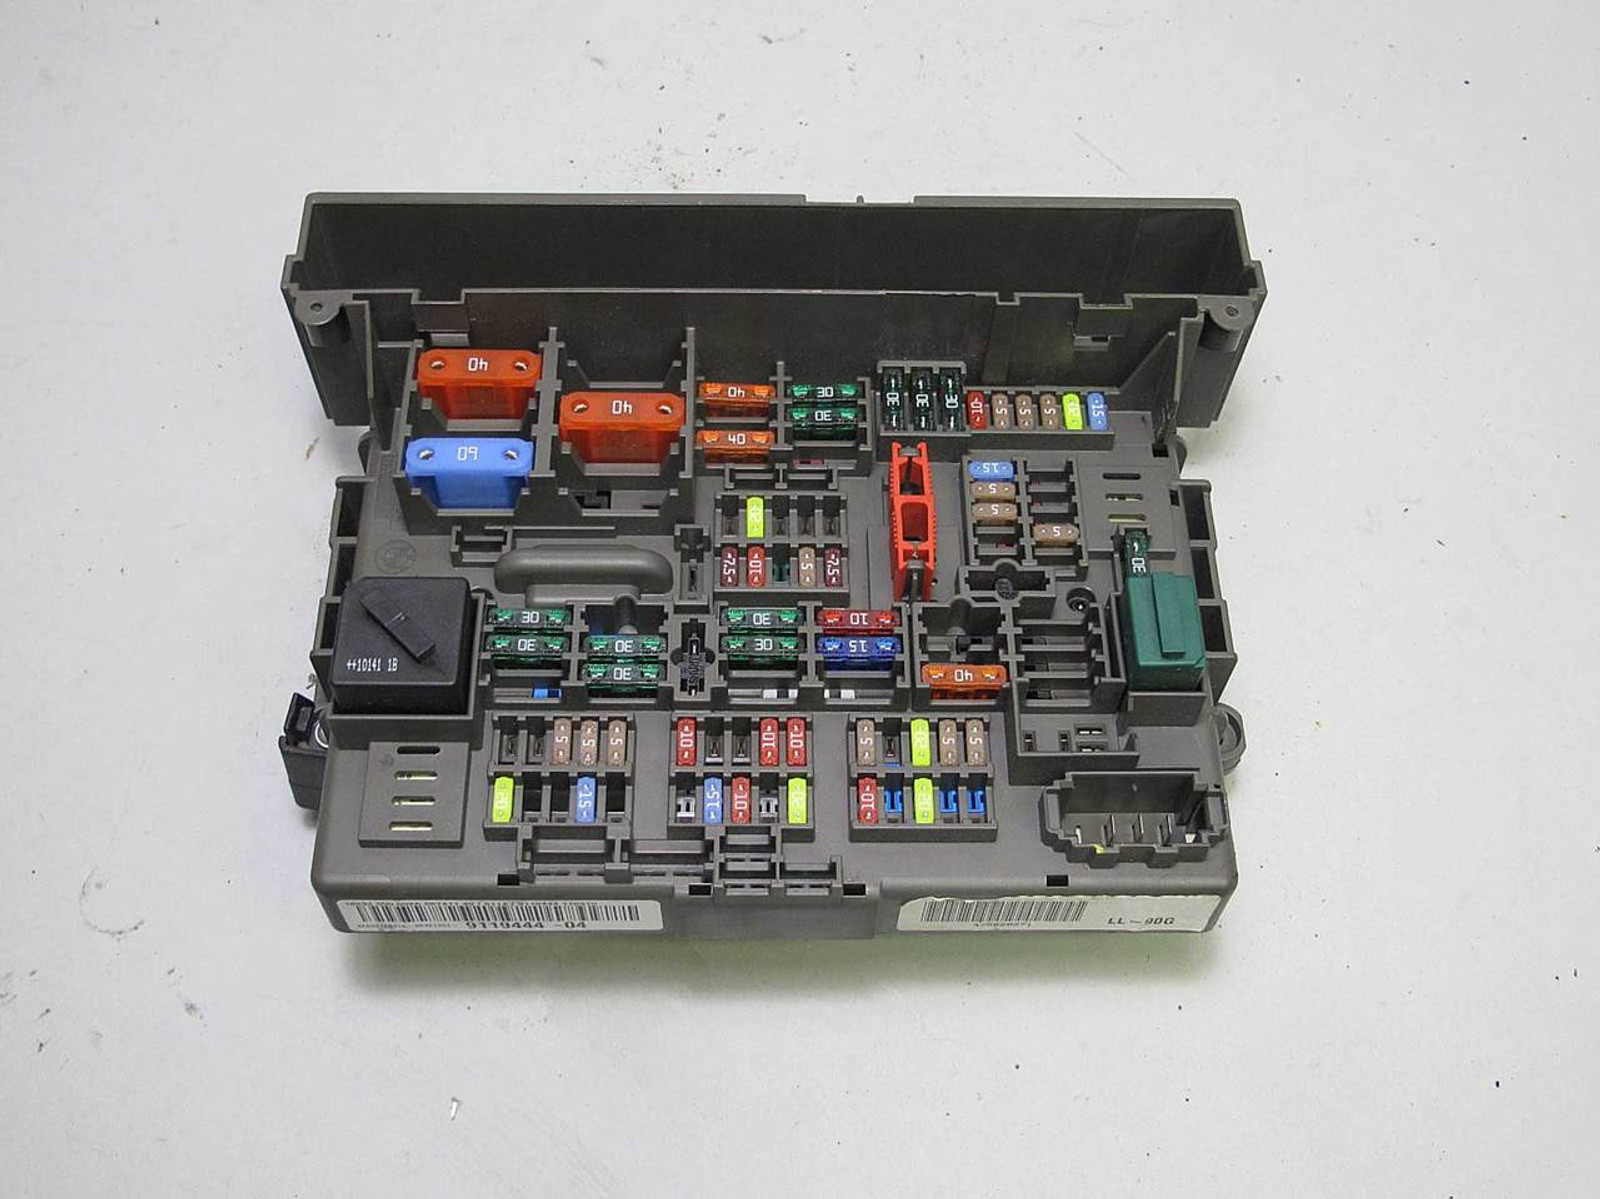 2000 bmw 740il fuse box location